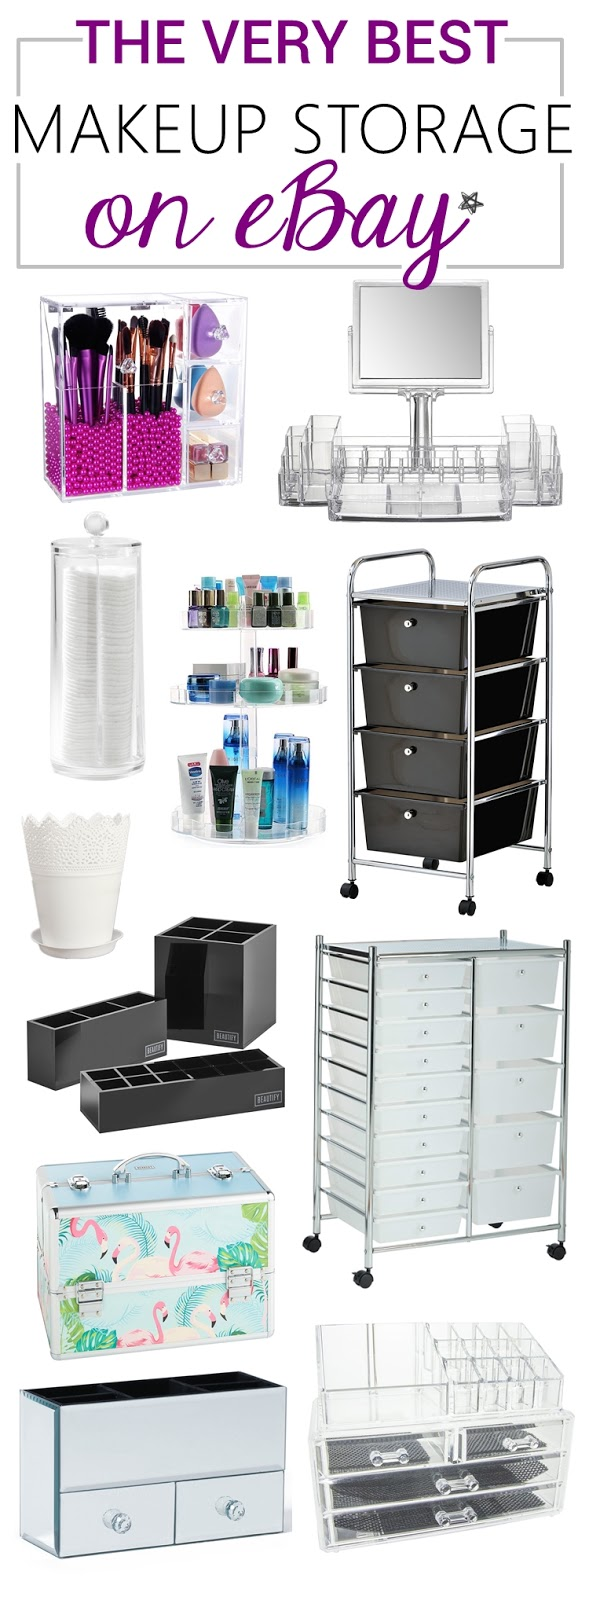 ebay-makeup-storage